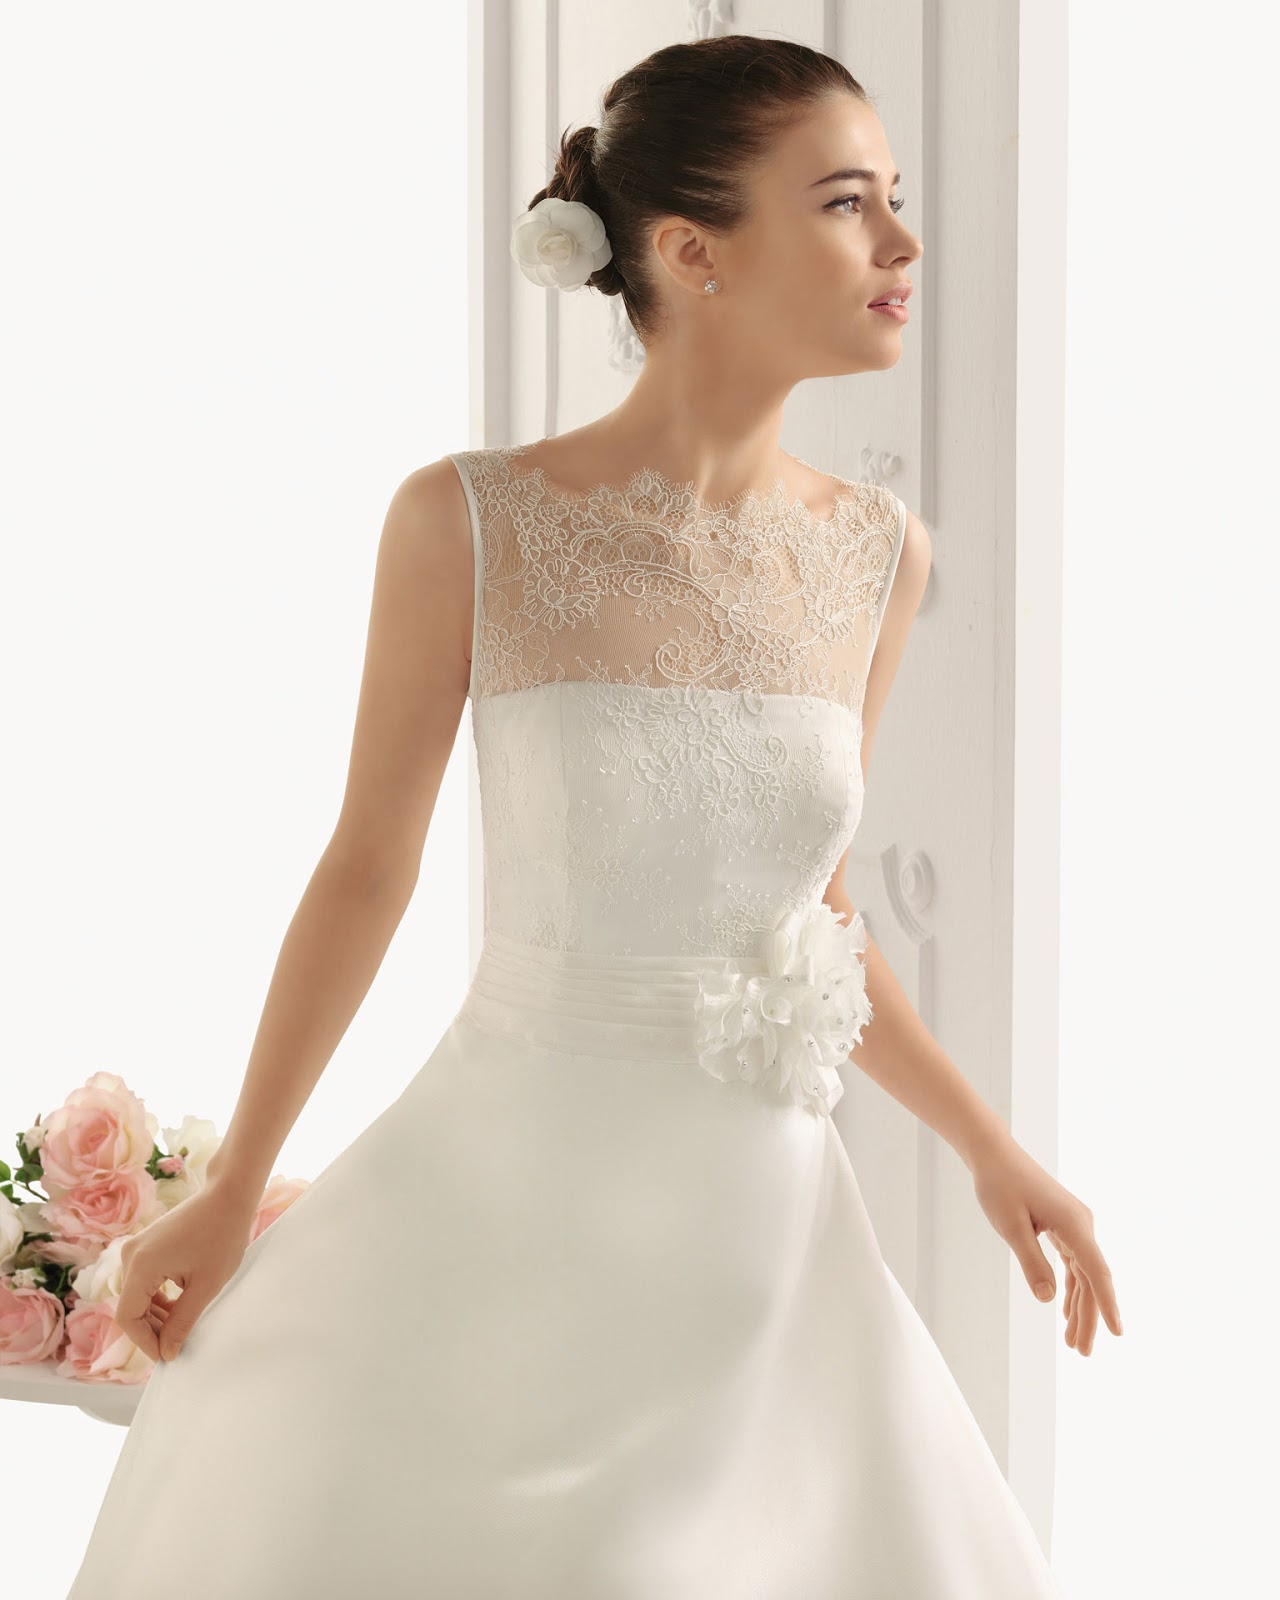 Maryland Pink and Green: Second Wedding Dress